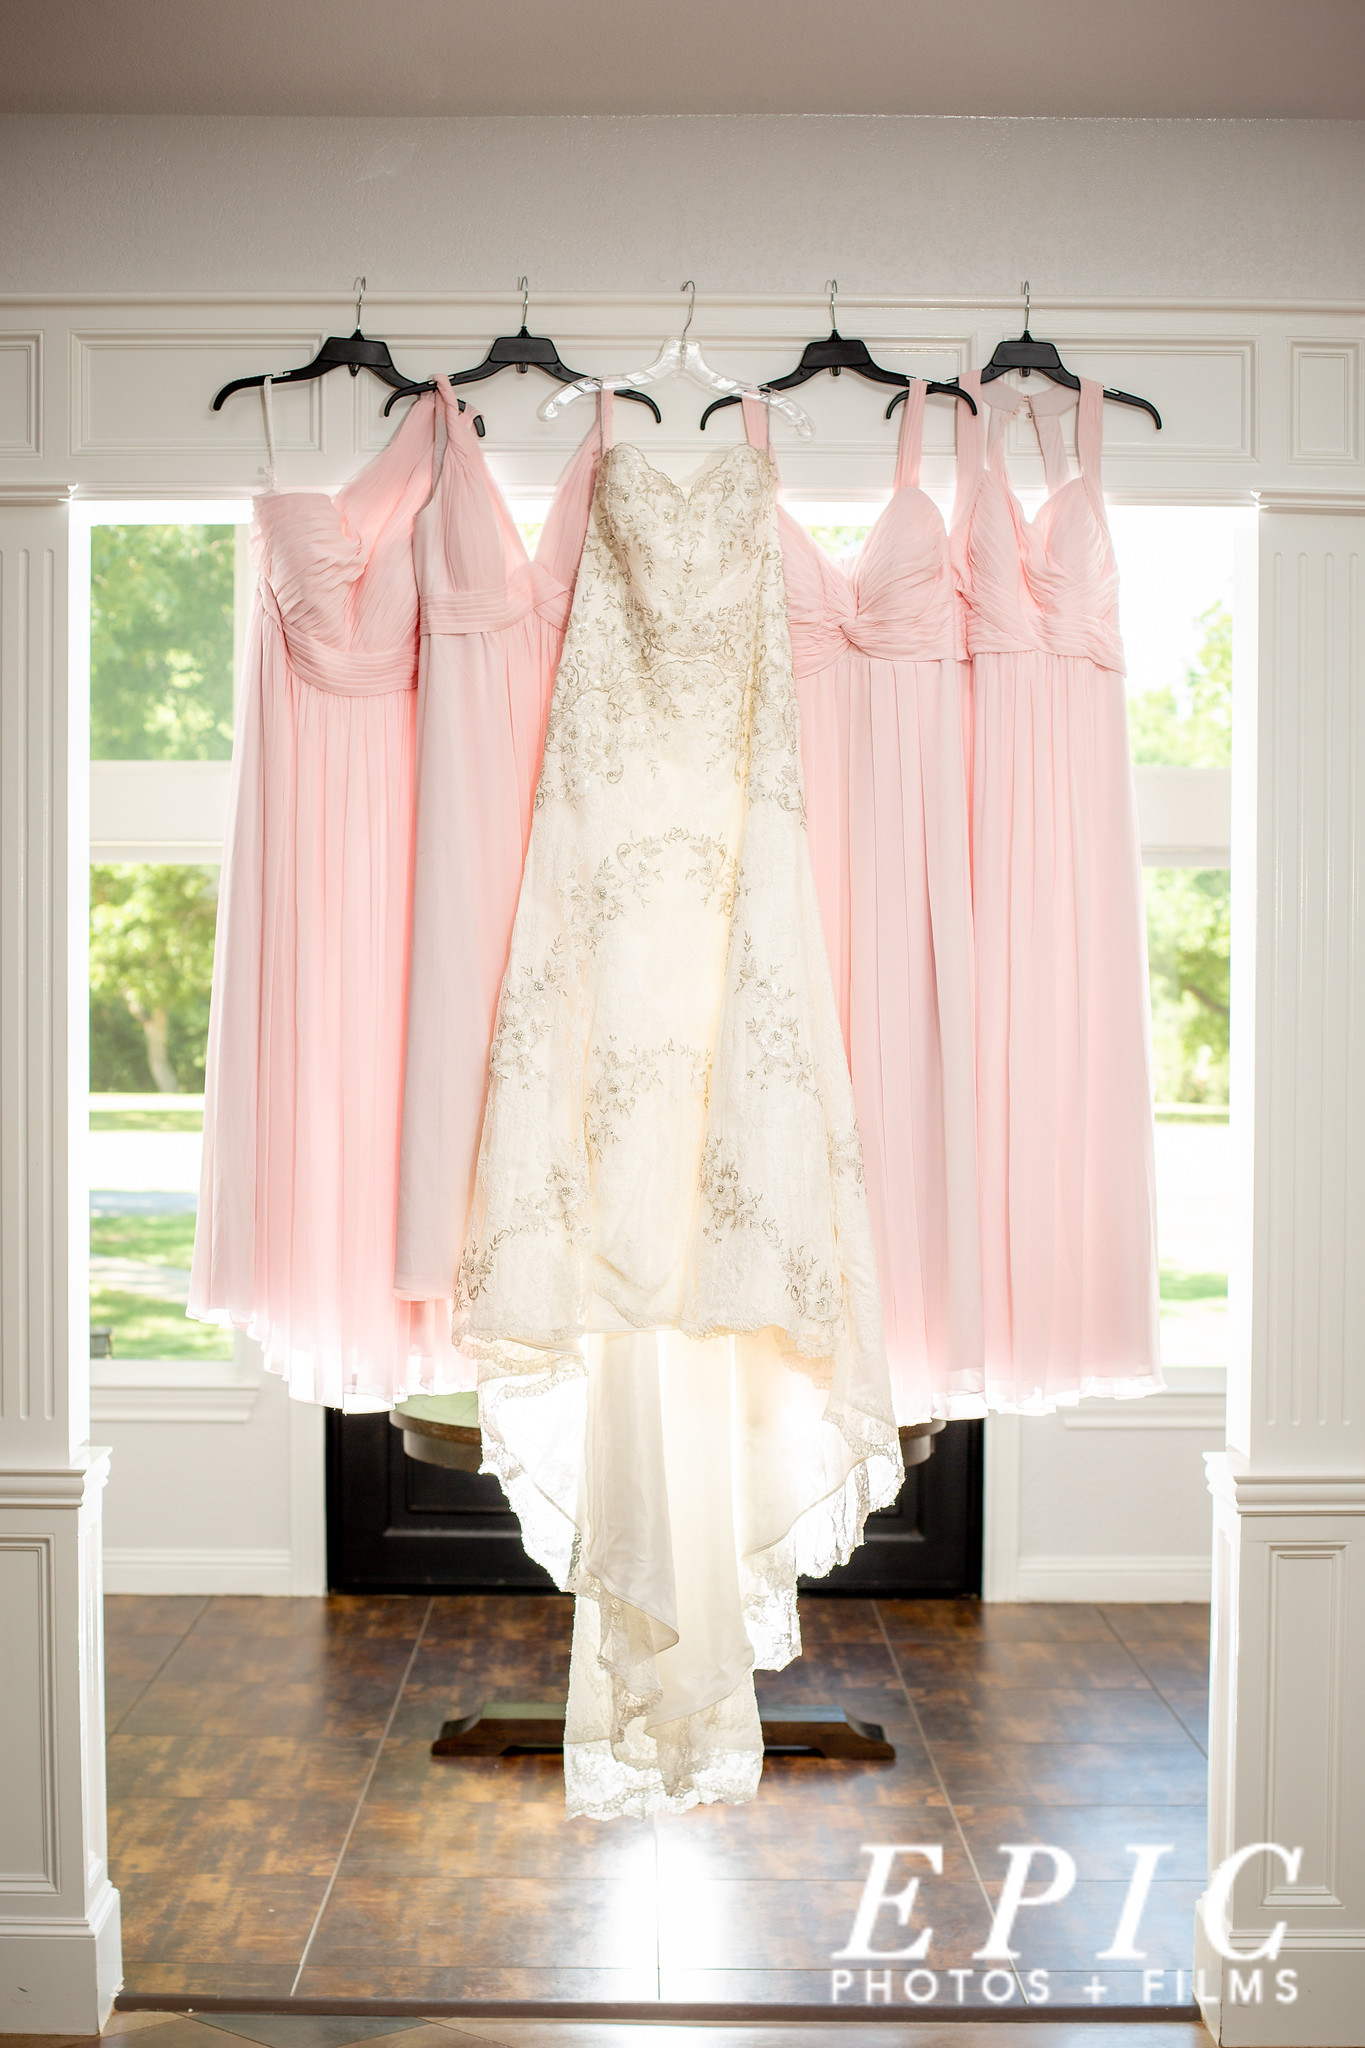 off-white lace wedding dress hanging next to four blush pink bridesmaids dresses on crown molding